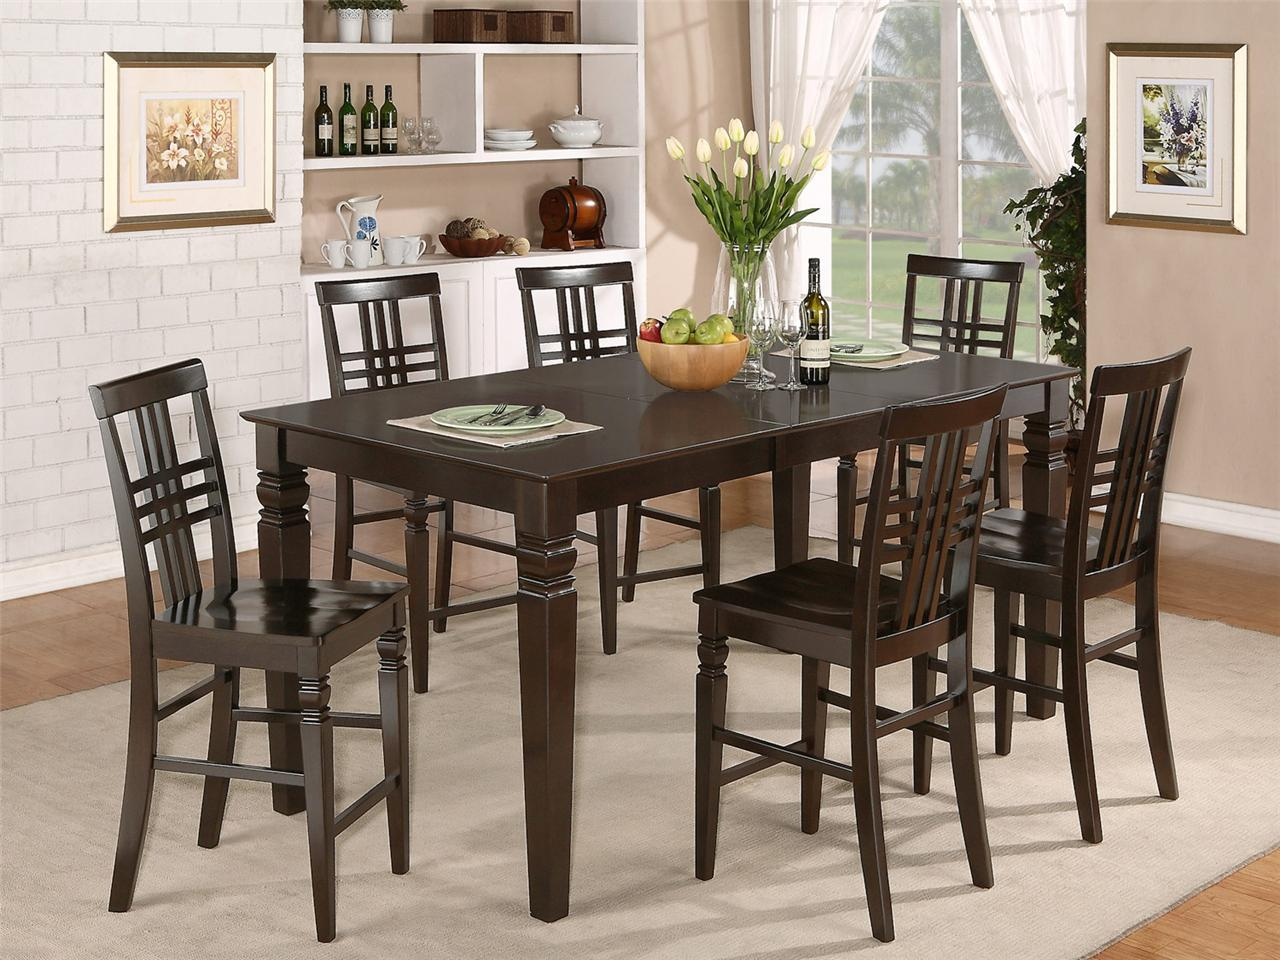 Bar Height Kitchen Table And Chairs 7pc Rectangular Counter Height Dining Room Table Set And 6